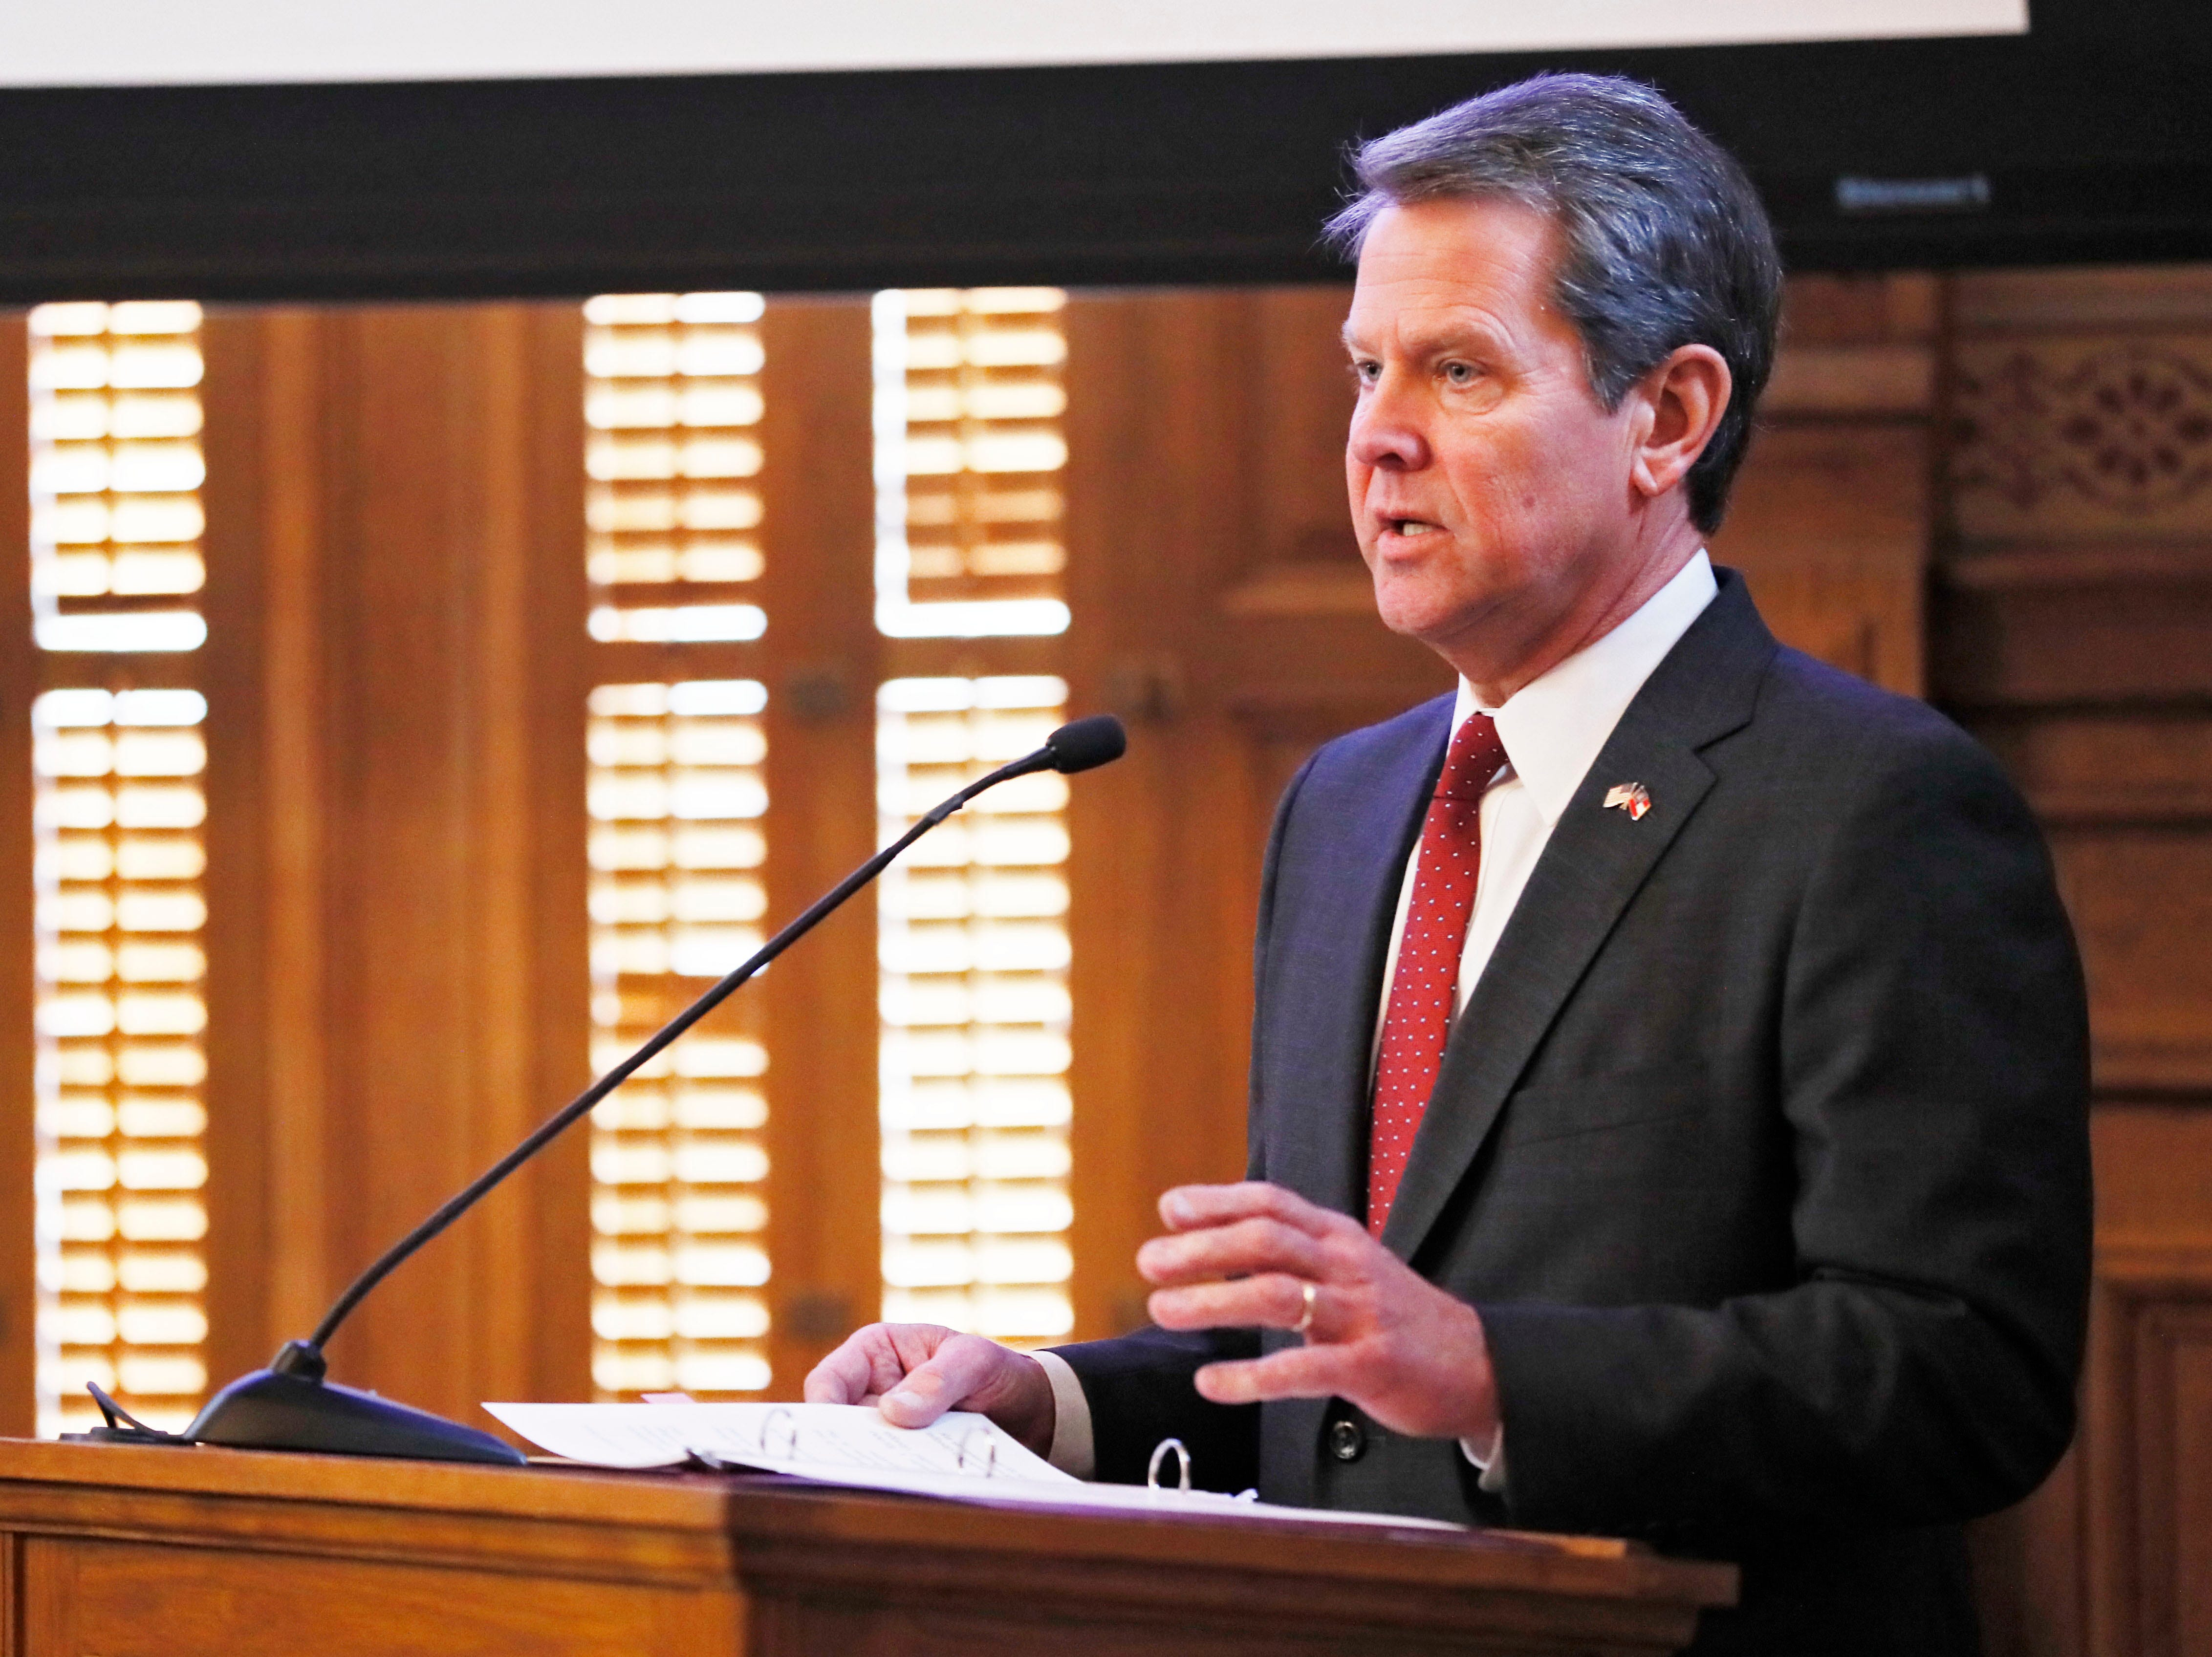 Georgia's foster care reform bill: Blood relatives shouldn't always have legal preference